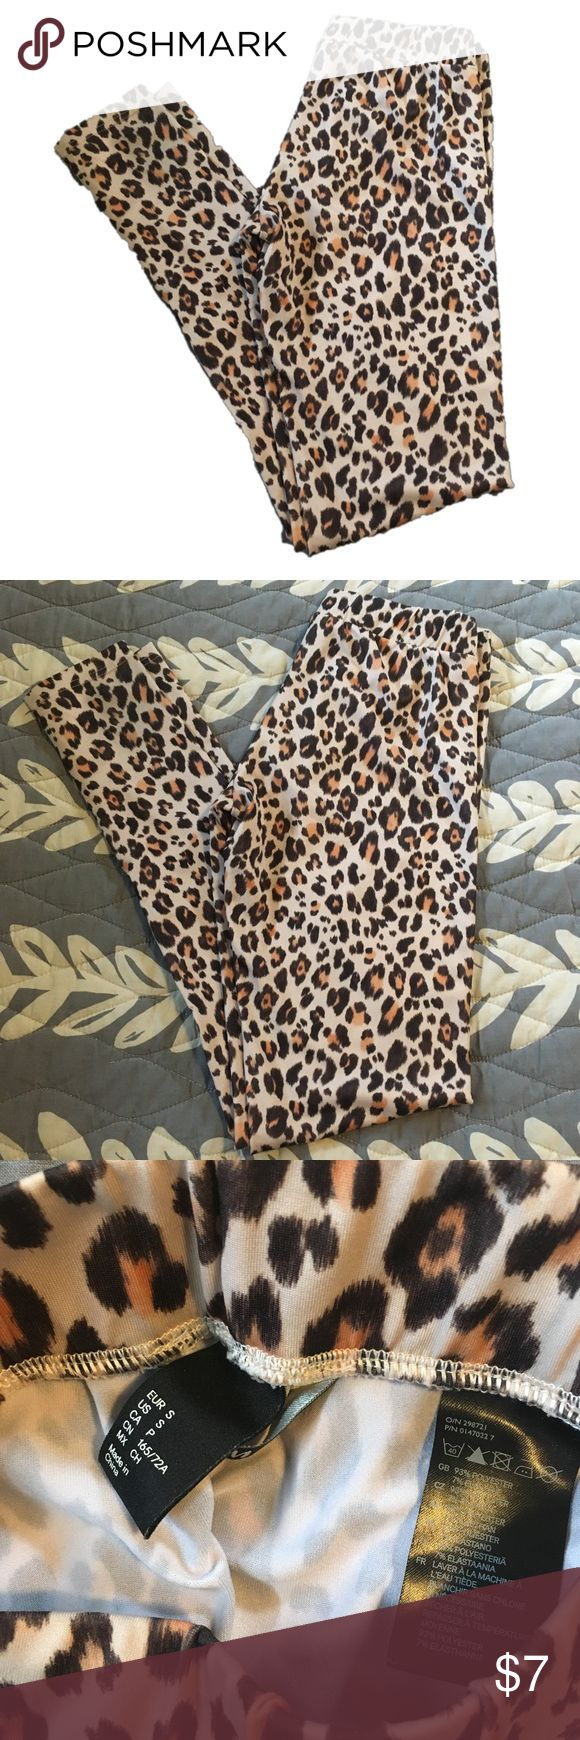 H&M leopard leggings H&M leopard leggings. Preloved but great condition. H&M Other